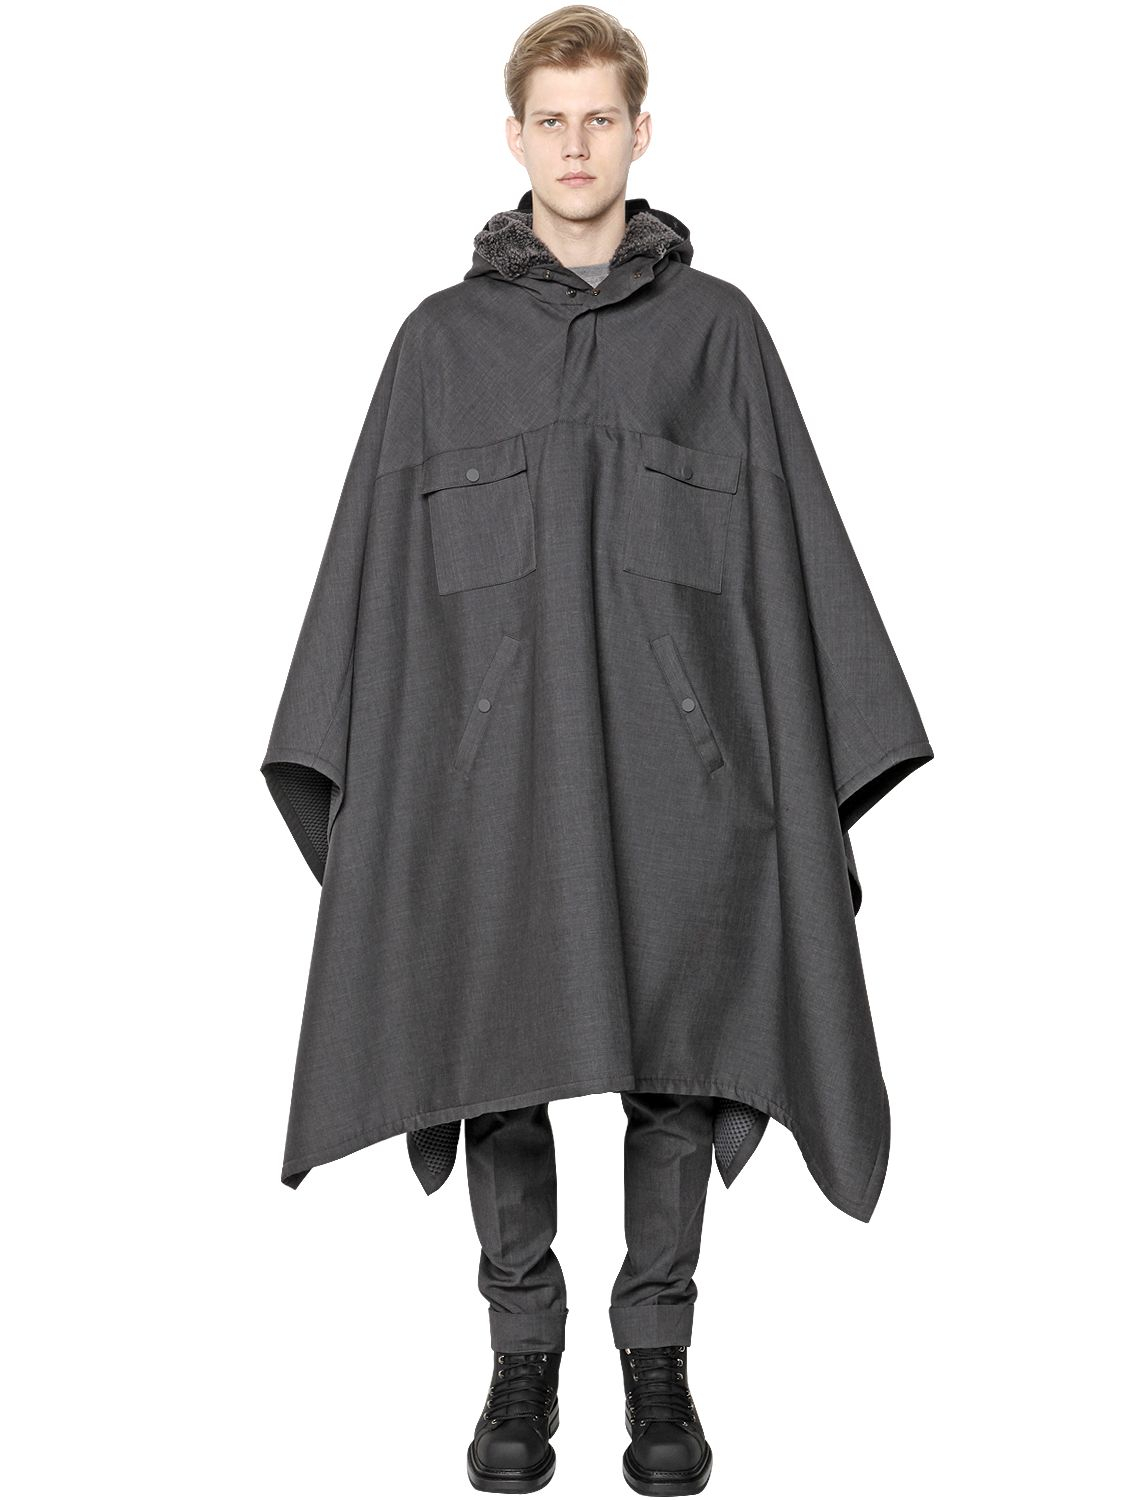 Very Lyst - Calvin Klein Bonded Wool & Mesh Poncho in Gray for Men LY93